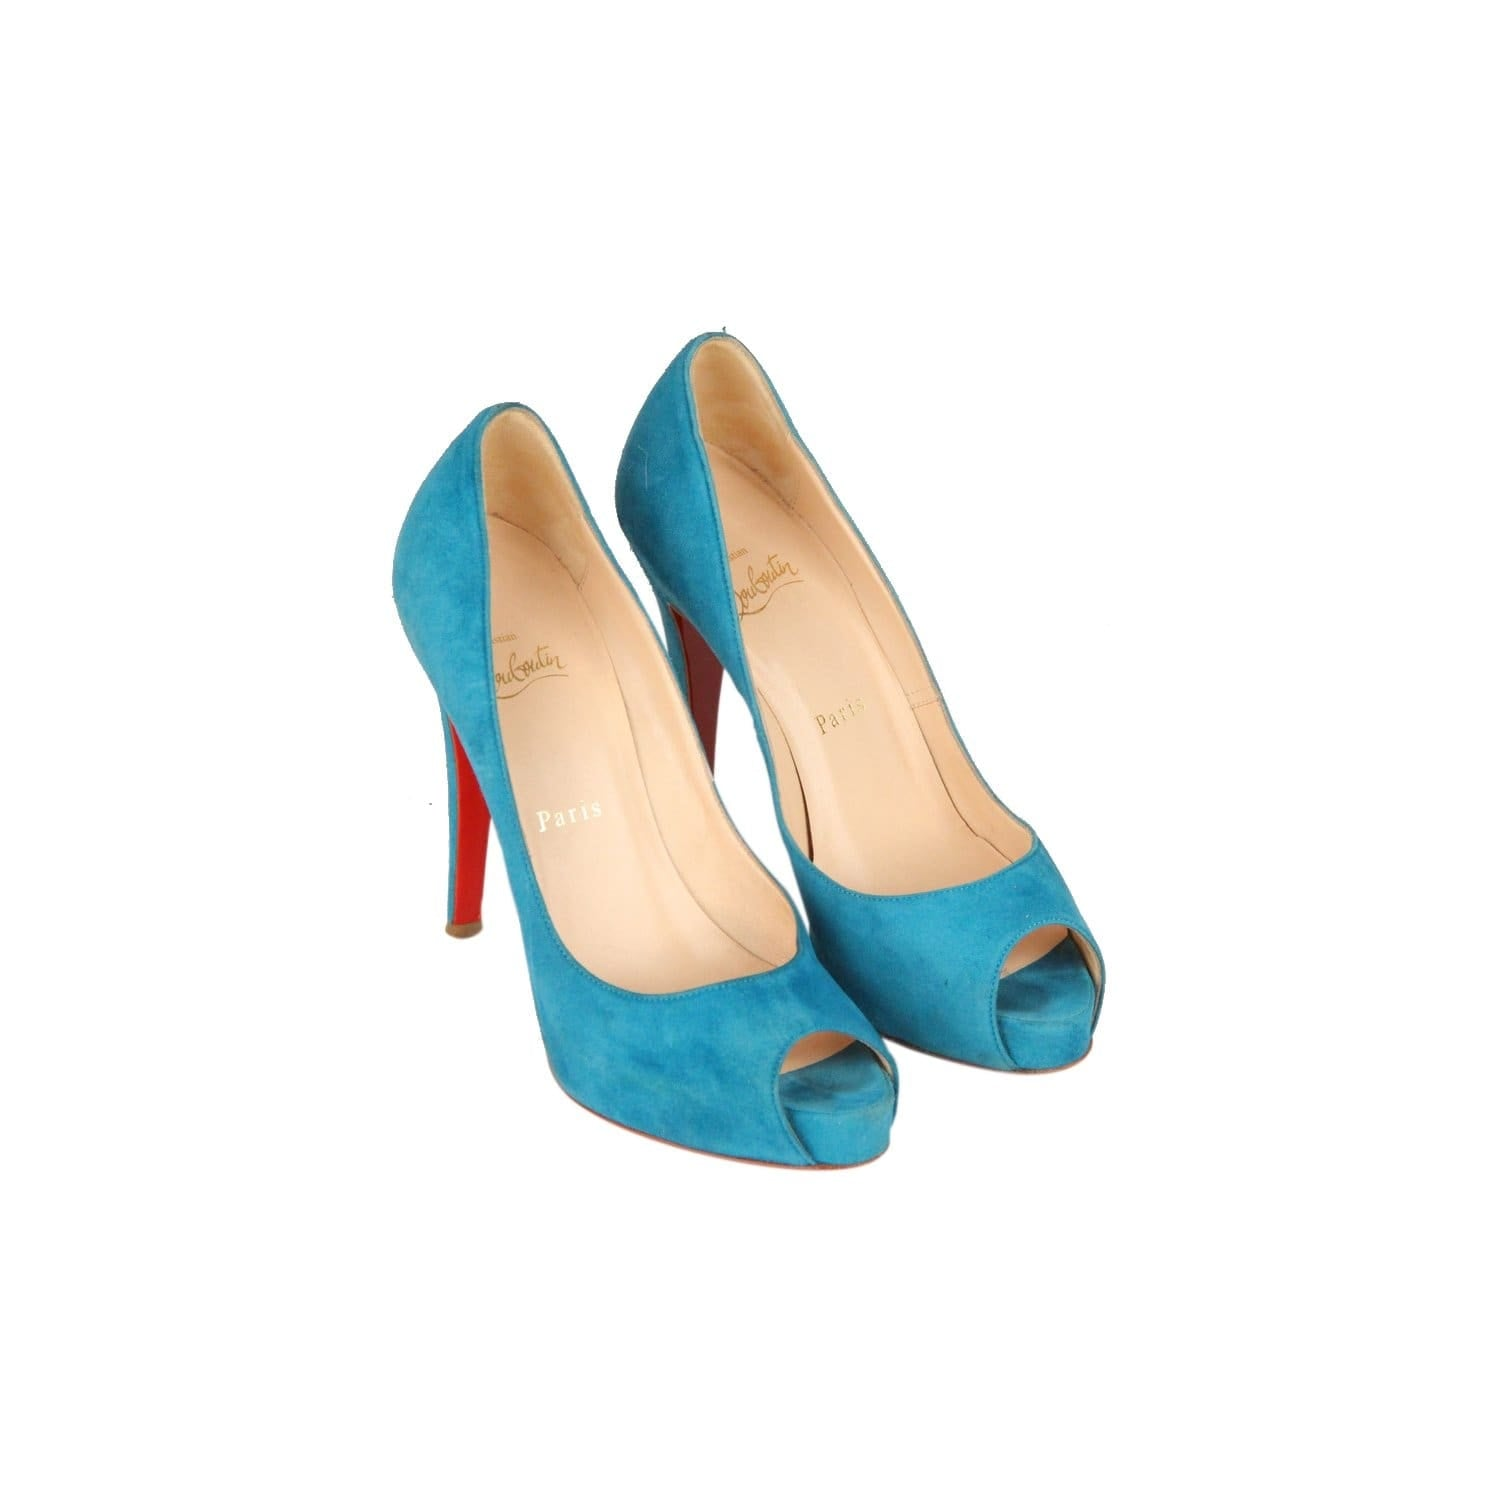 8fab563cc6d Christian Louboutin Turquoise Suede Open Toe Shoes Vendome120 Heels 36.5  Opherty   Ciocci